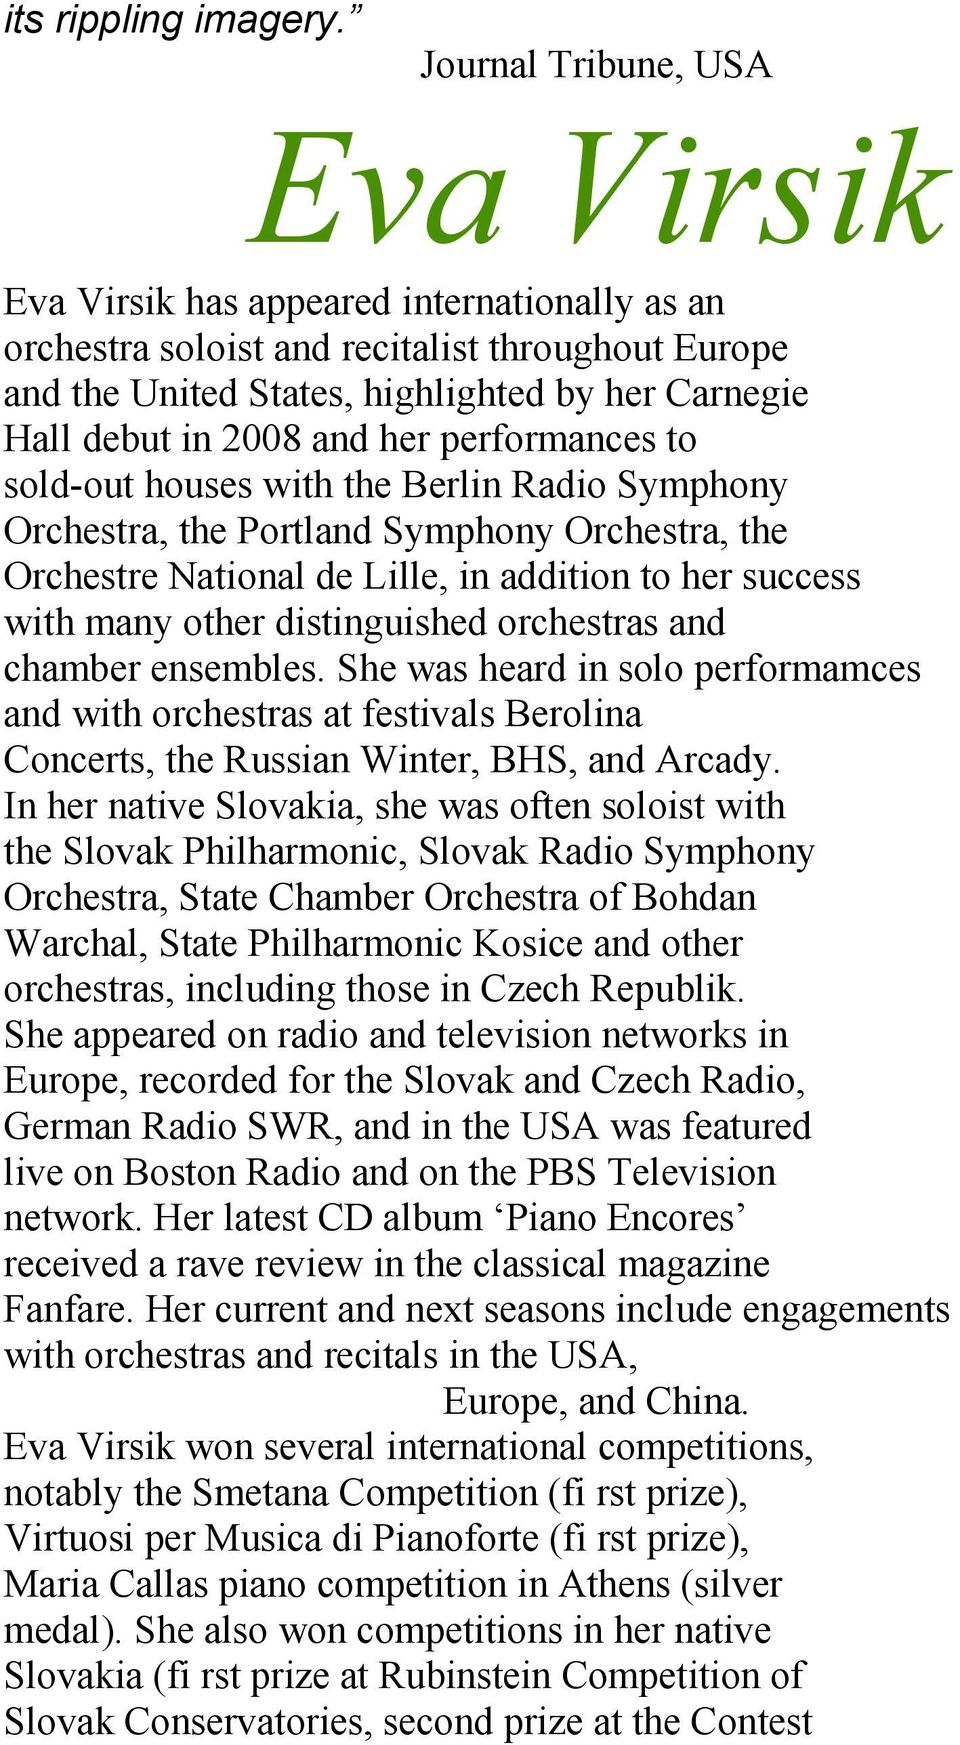 and her performances to sold-out houses with the Berlin Radio Symphony Orchestra, the Portland Symphony Orchestra, the Orchestre National de Lille, in addition to her success with many other